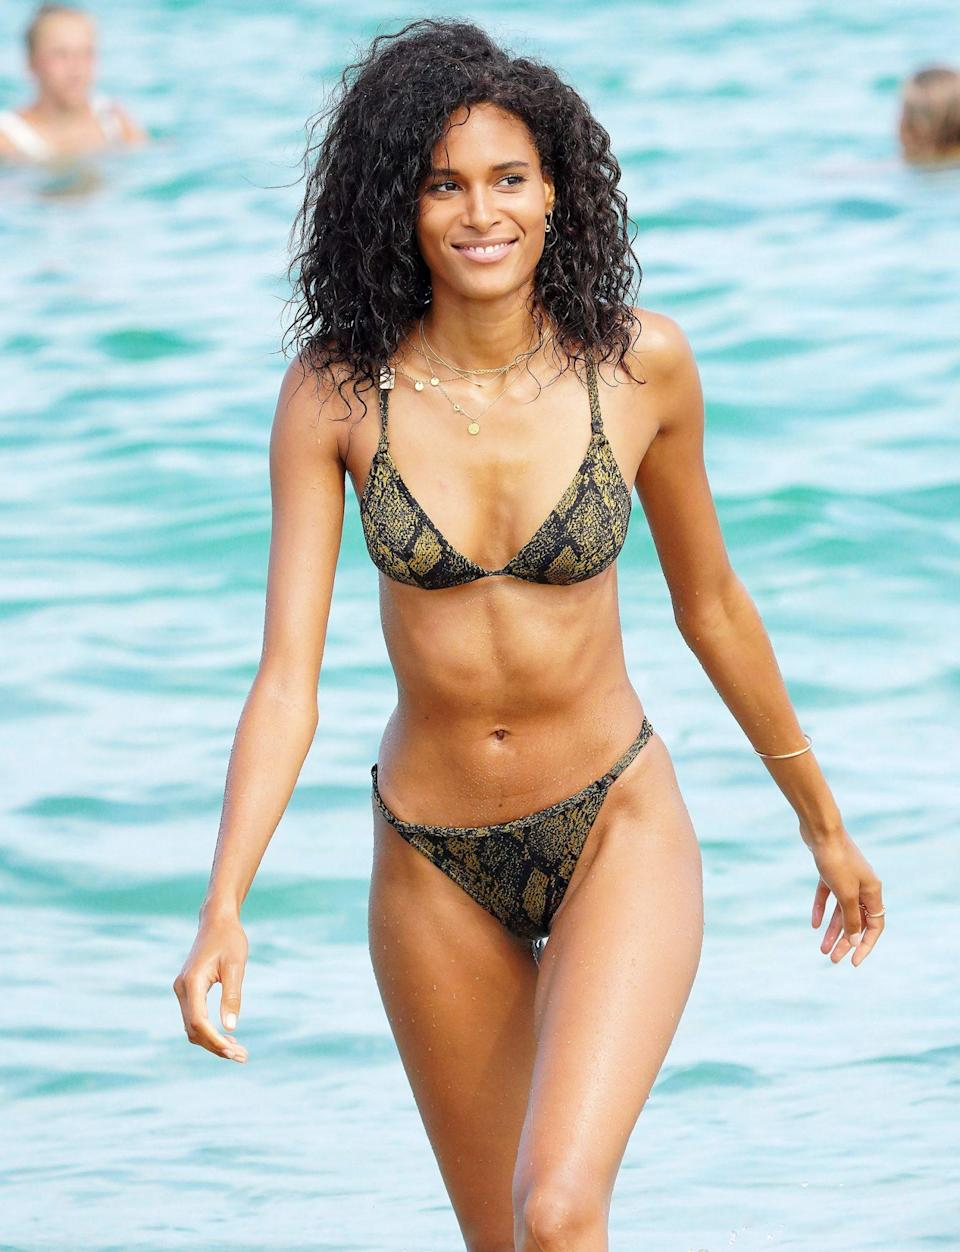 <p>French model Cindy Bruna soaks up some sunshine at celebrity hotspot Club 55 in Saint-Tropez, France, on Wednesday.</p>